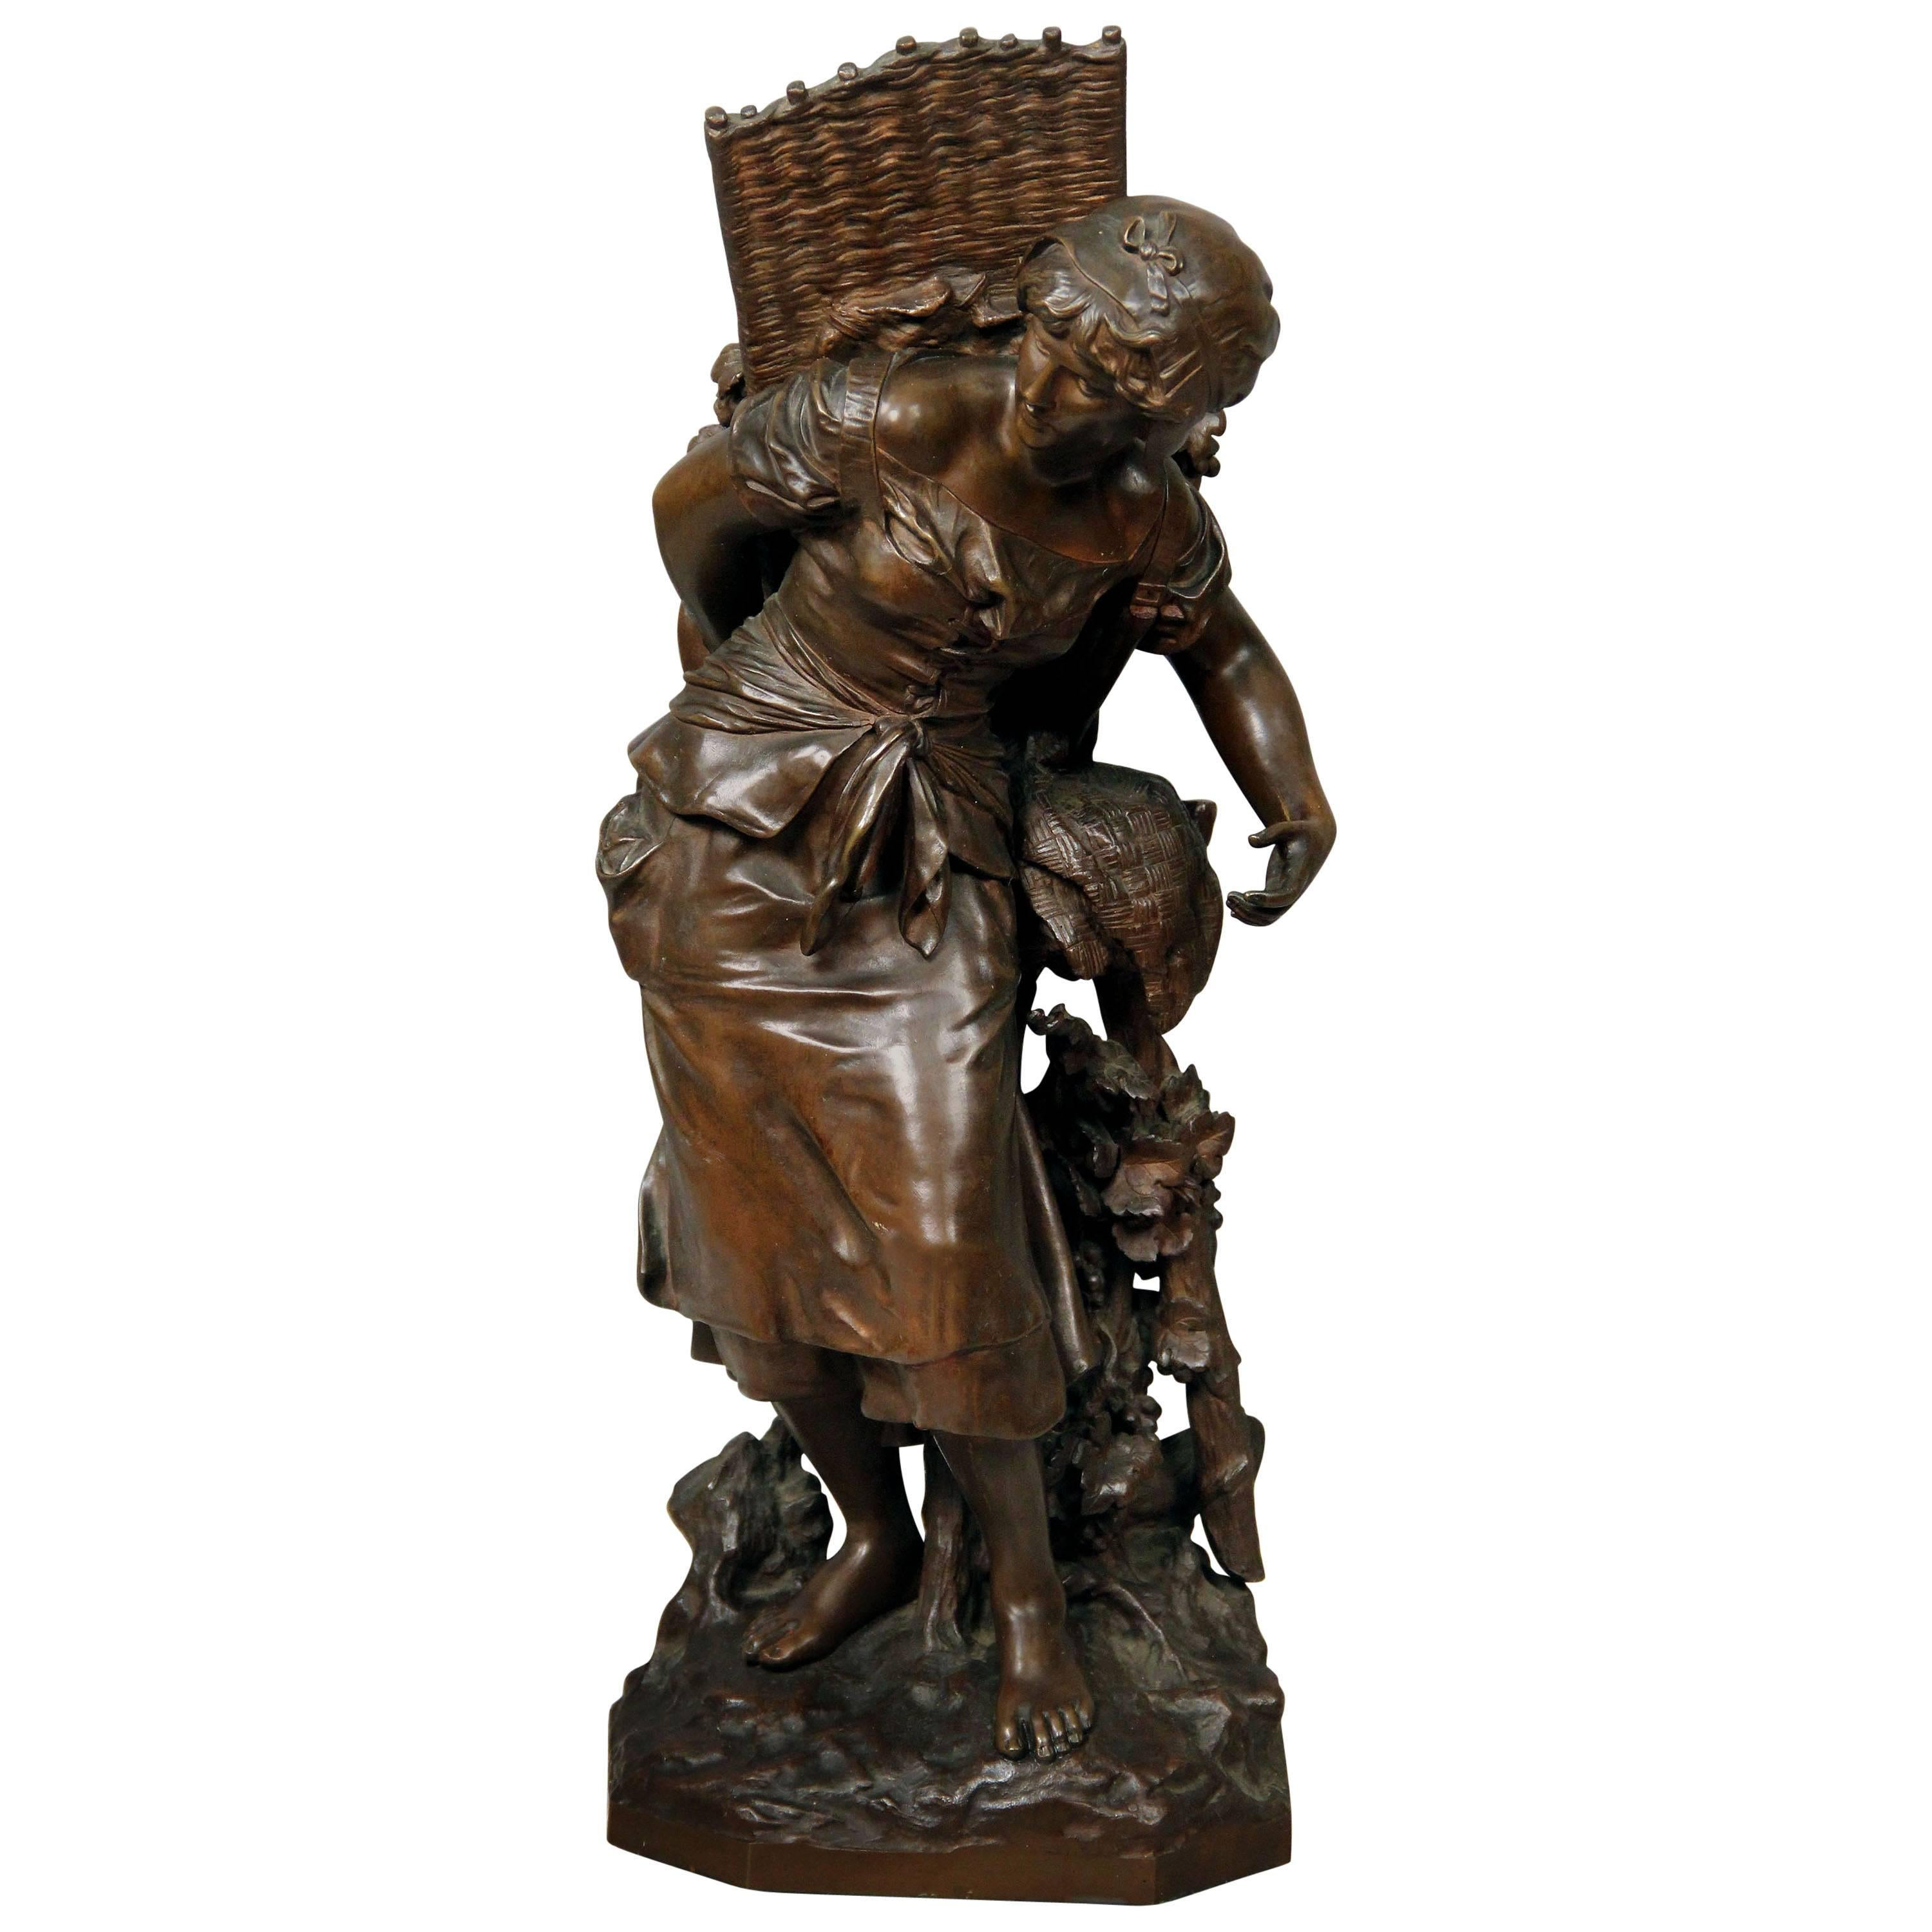 Lovely Late 19th Century Bronze Sculpture by Mathurin Moreau